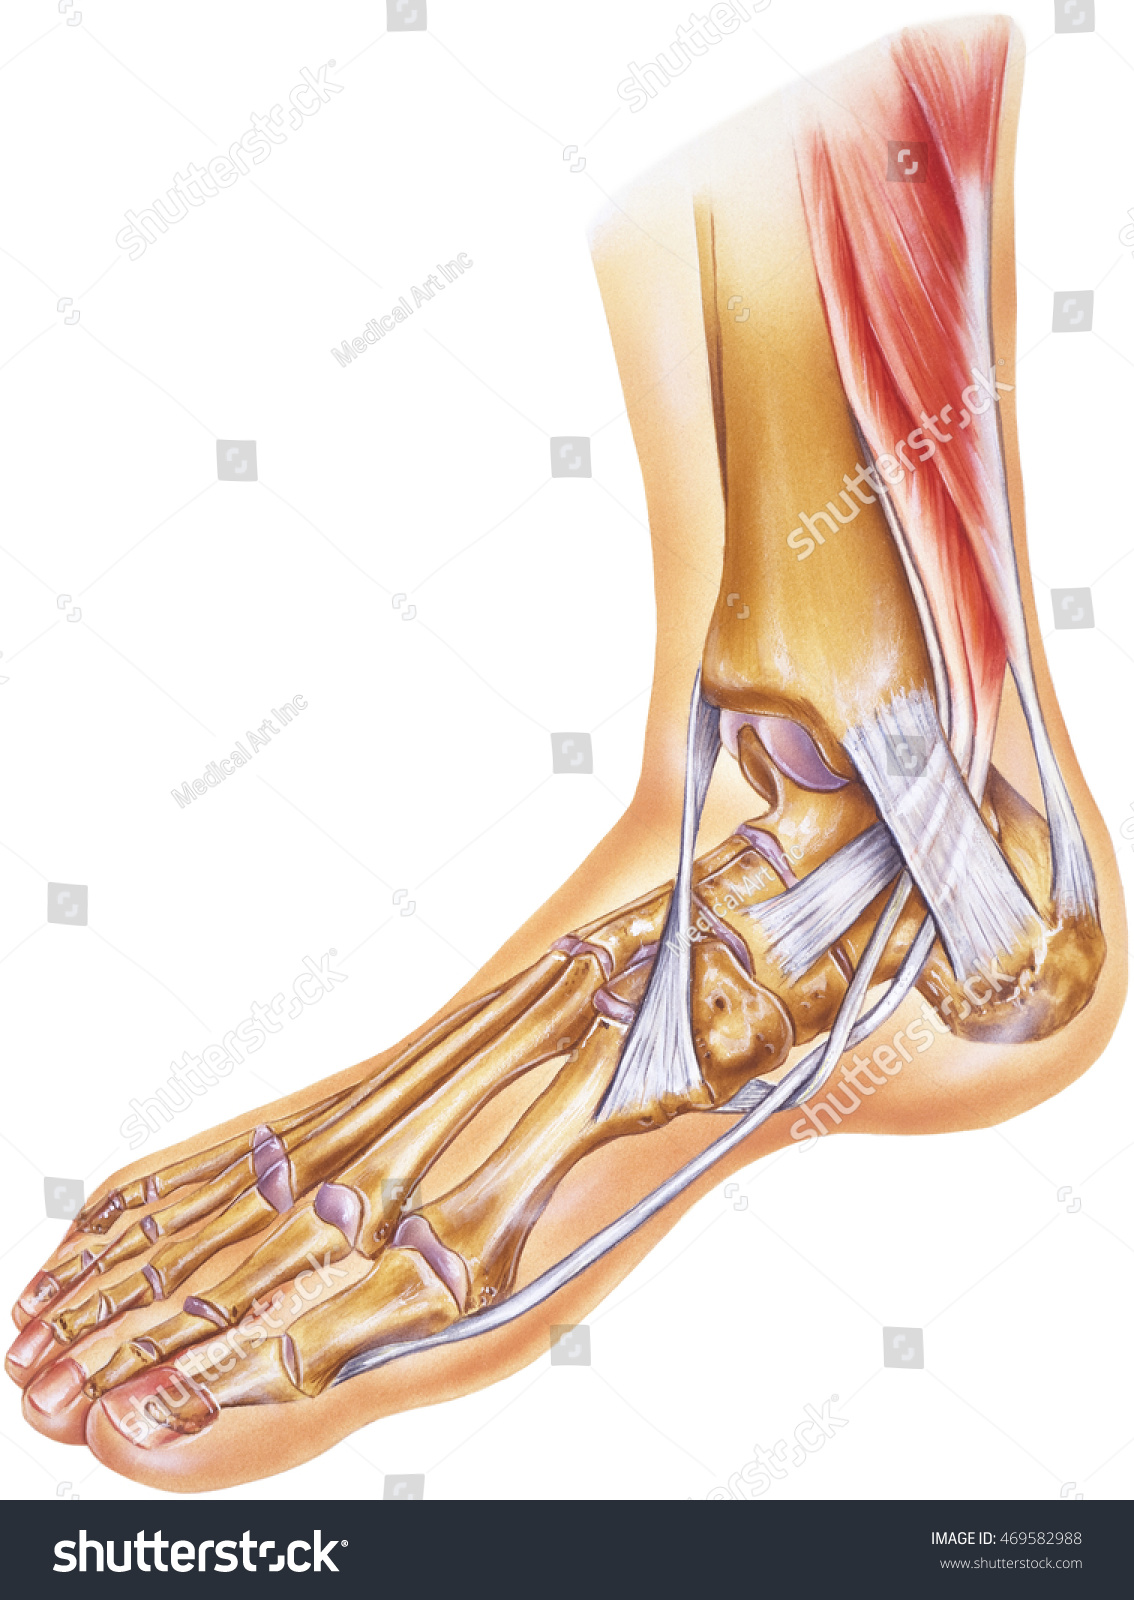 Foot Ankle Tendons Ligaments Joints Bones Stock Illustration ...